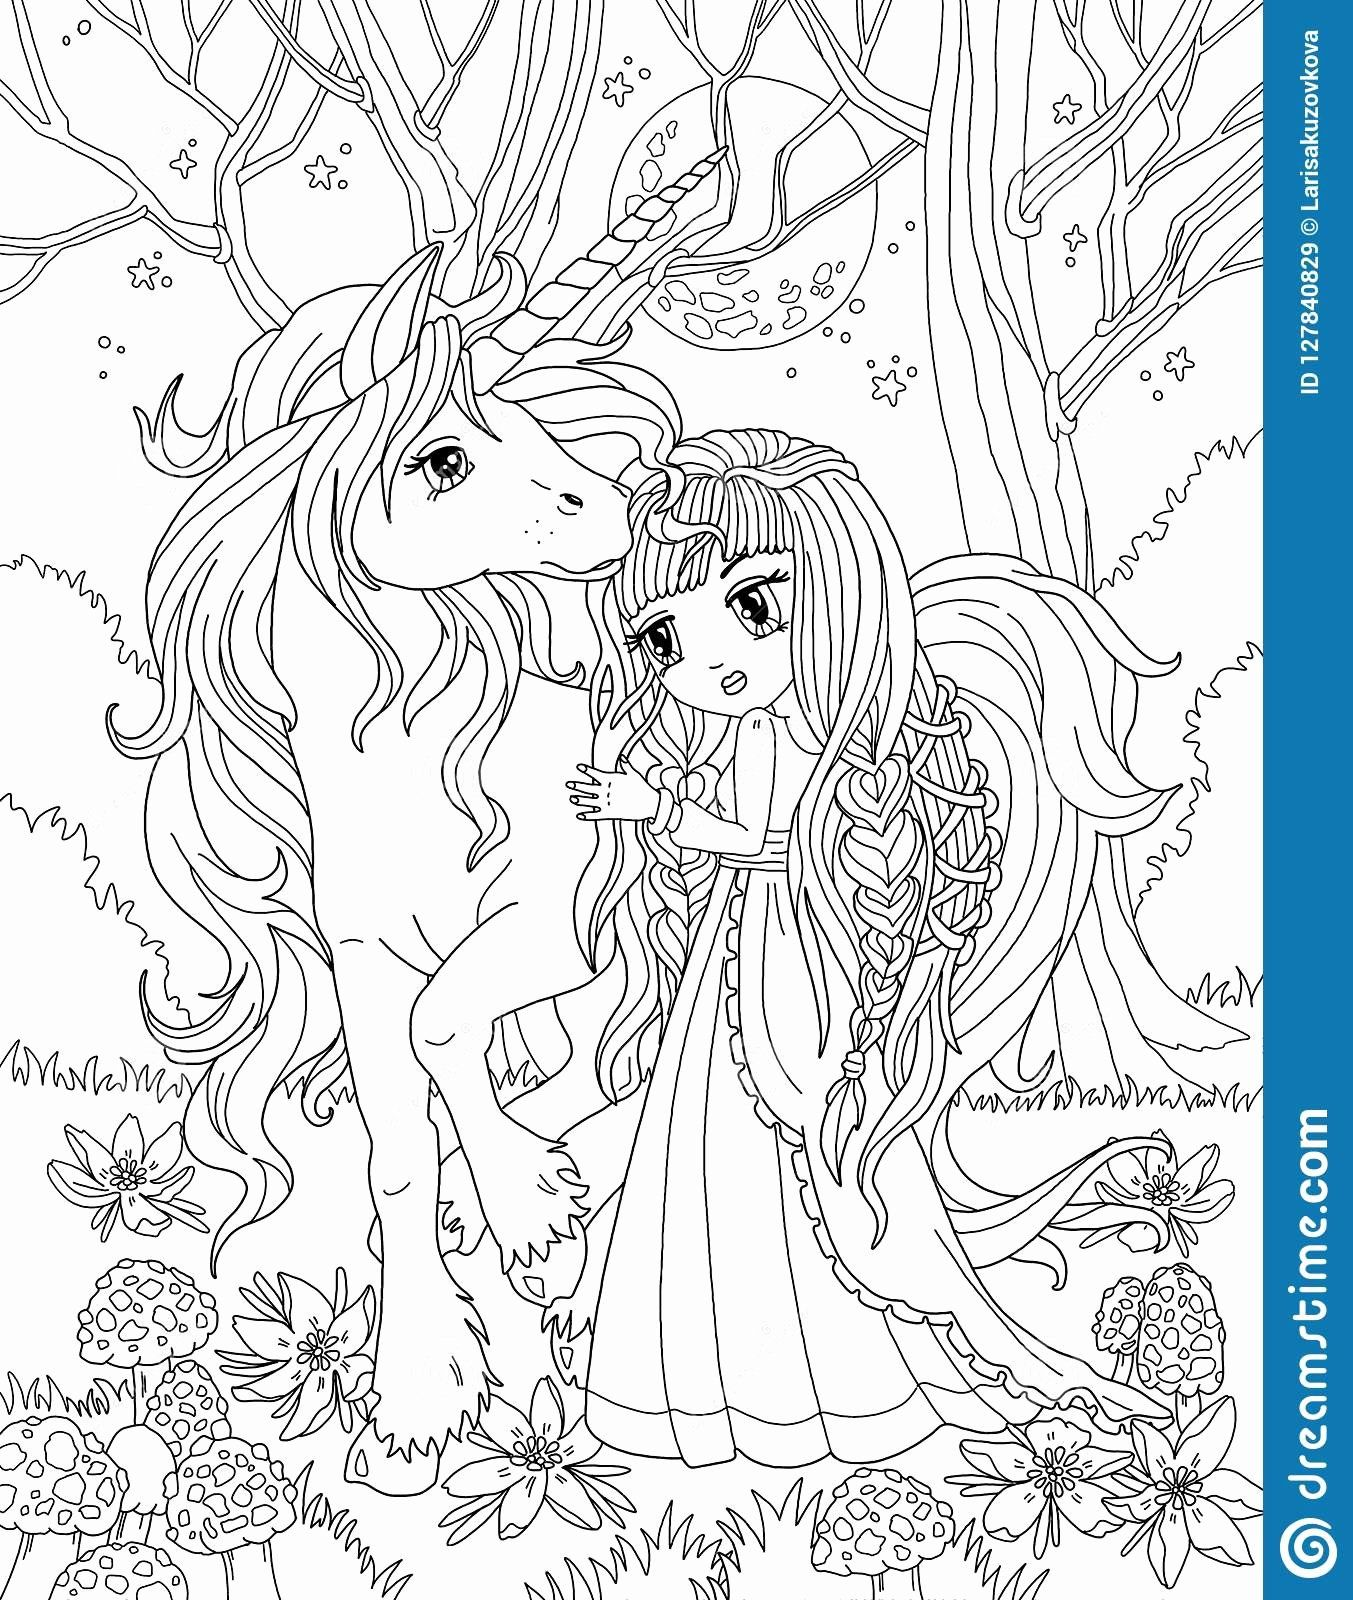 Princess Unicorn Coloring Pages in 2020 Unicorn coloring